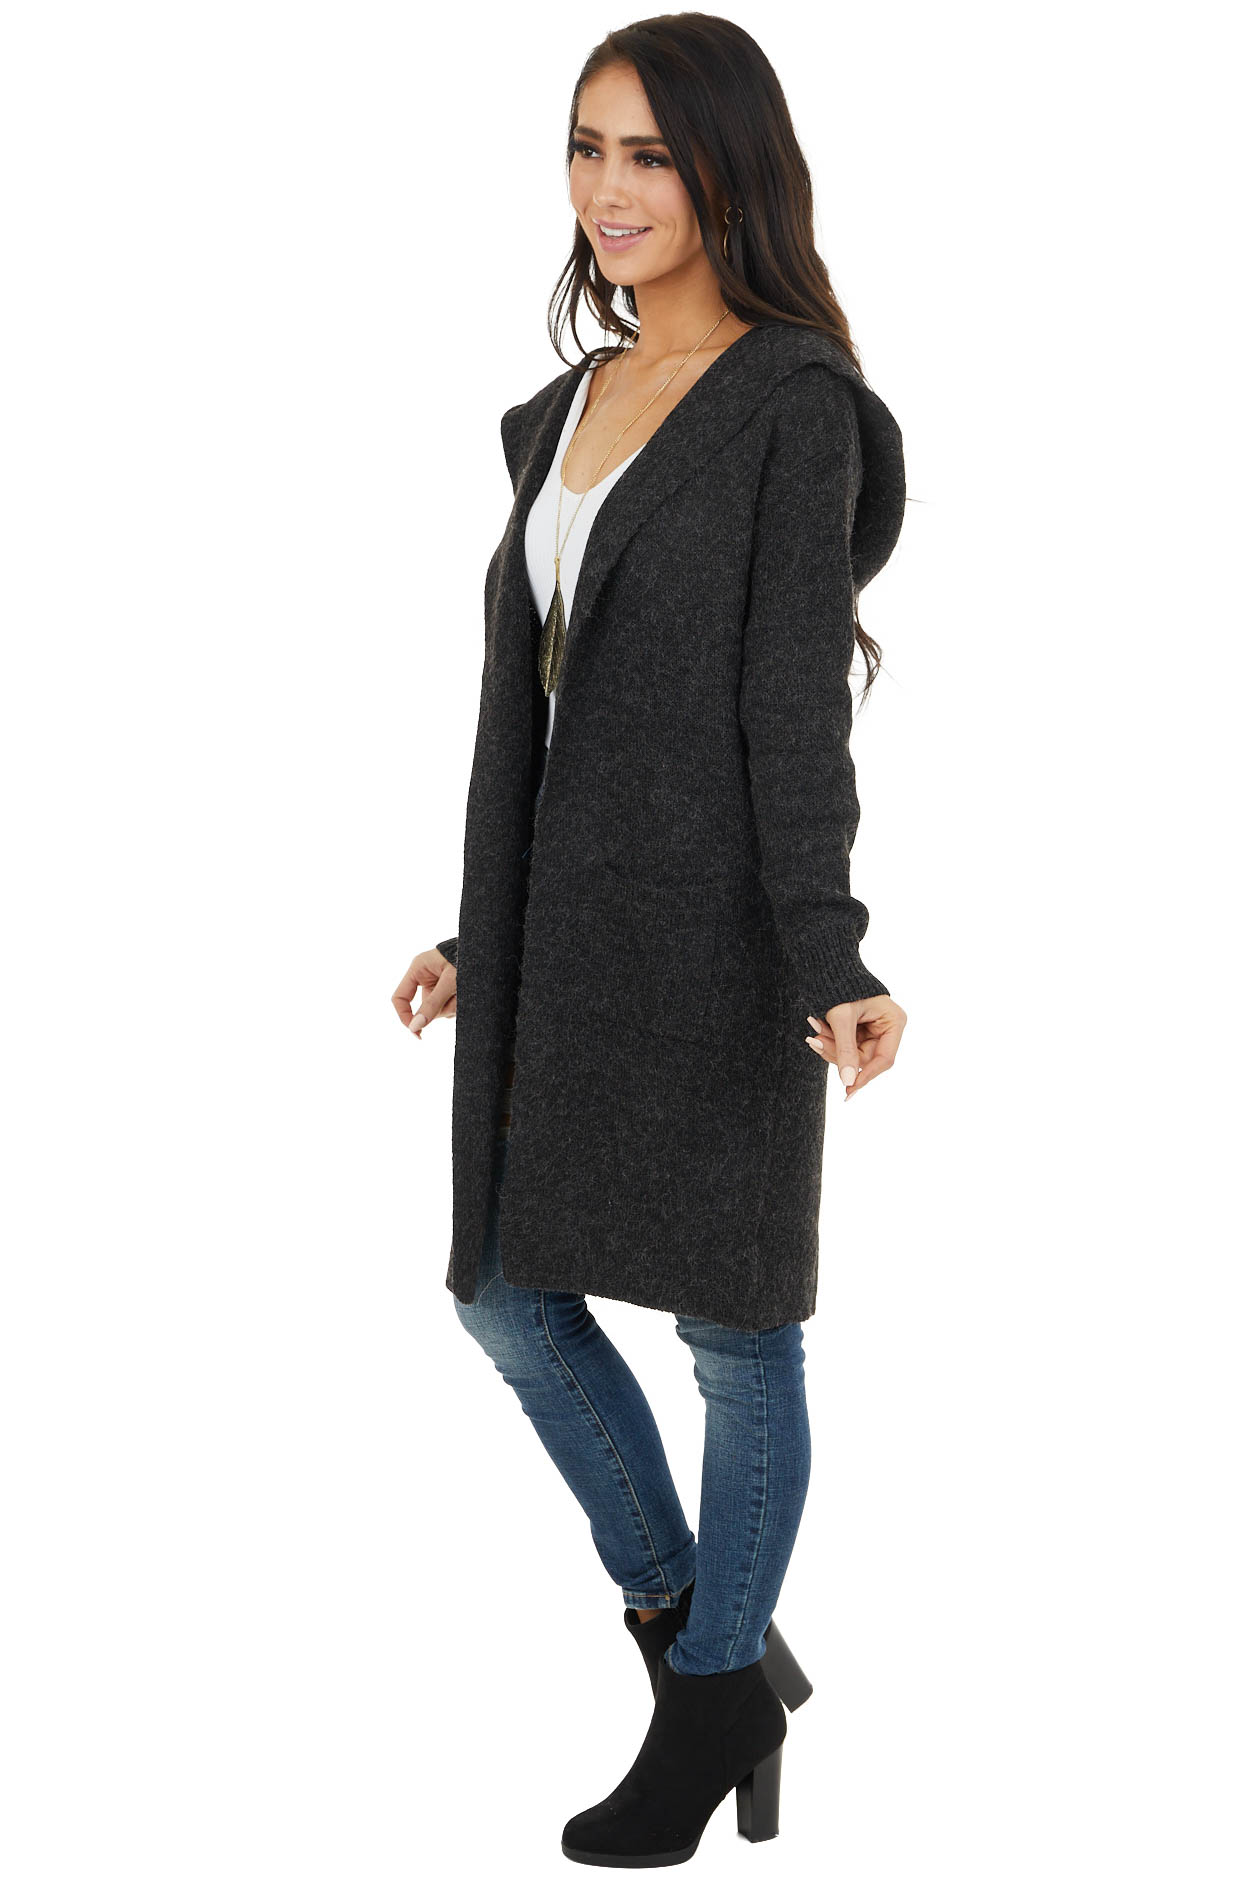 Black Open Front Fuzzy Duster Cardigan with Hood and Pockets